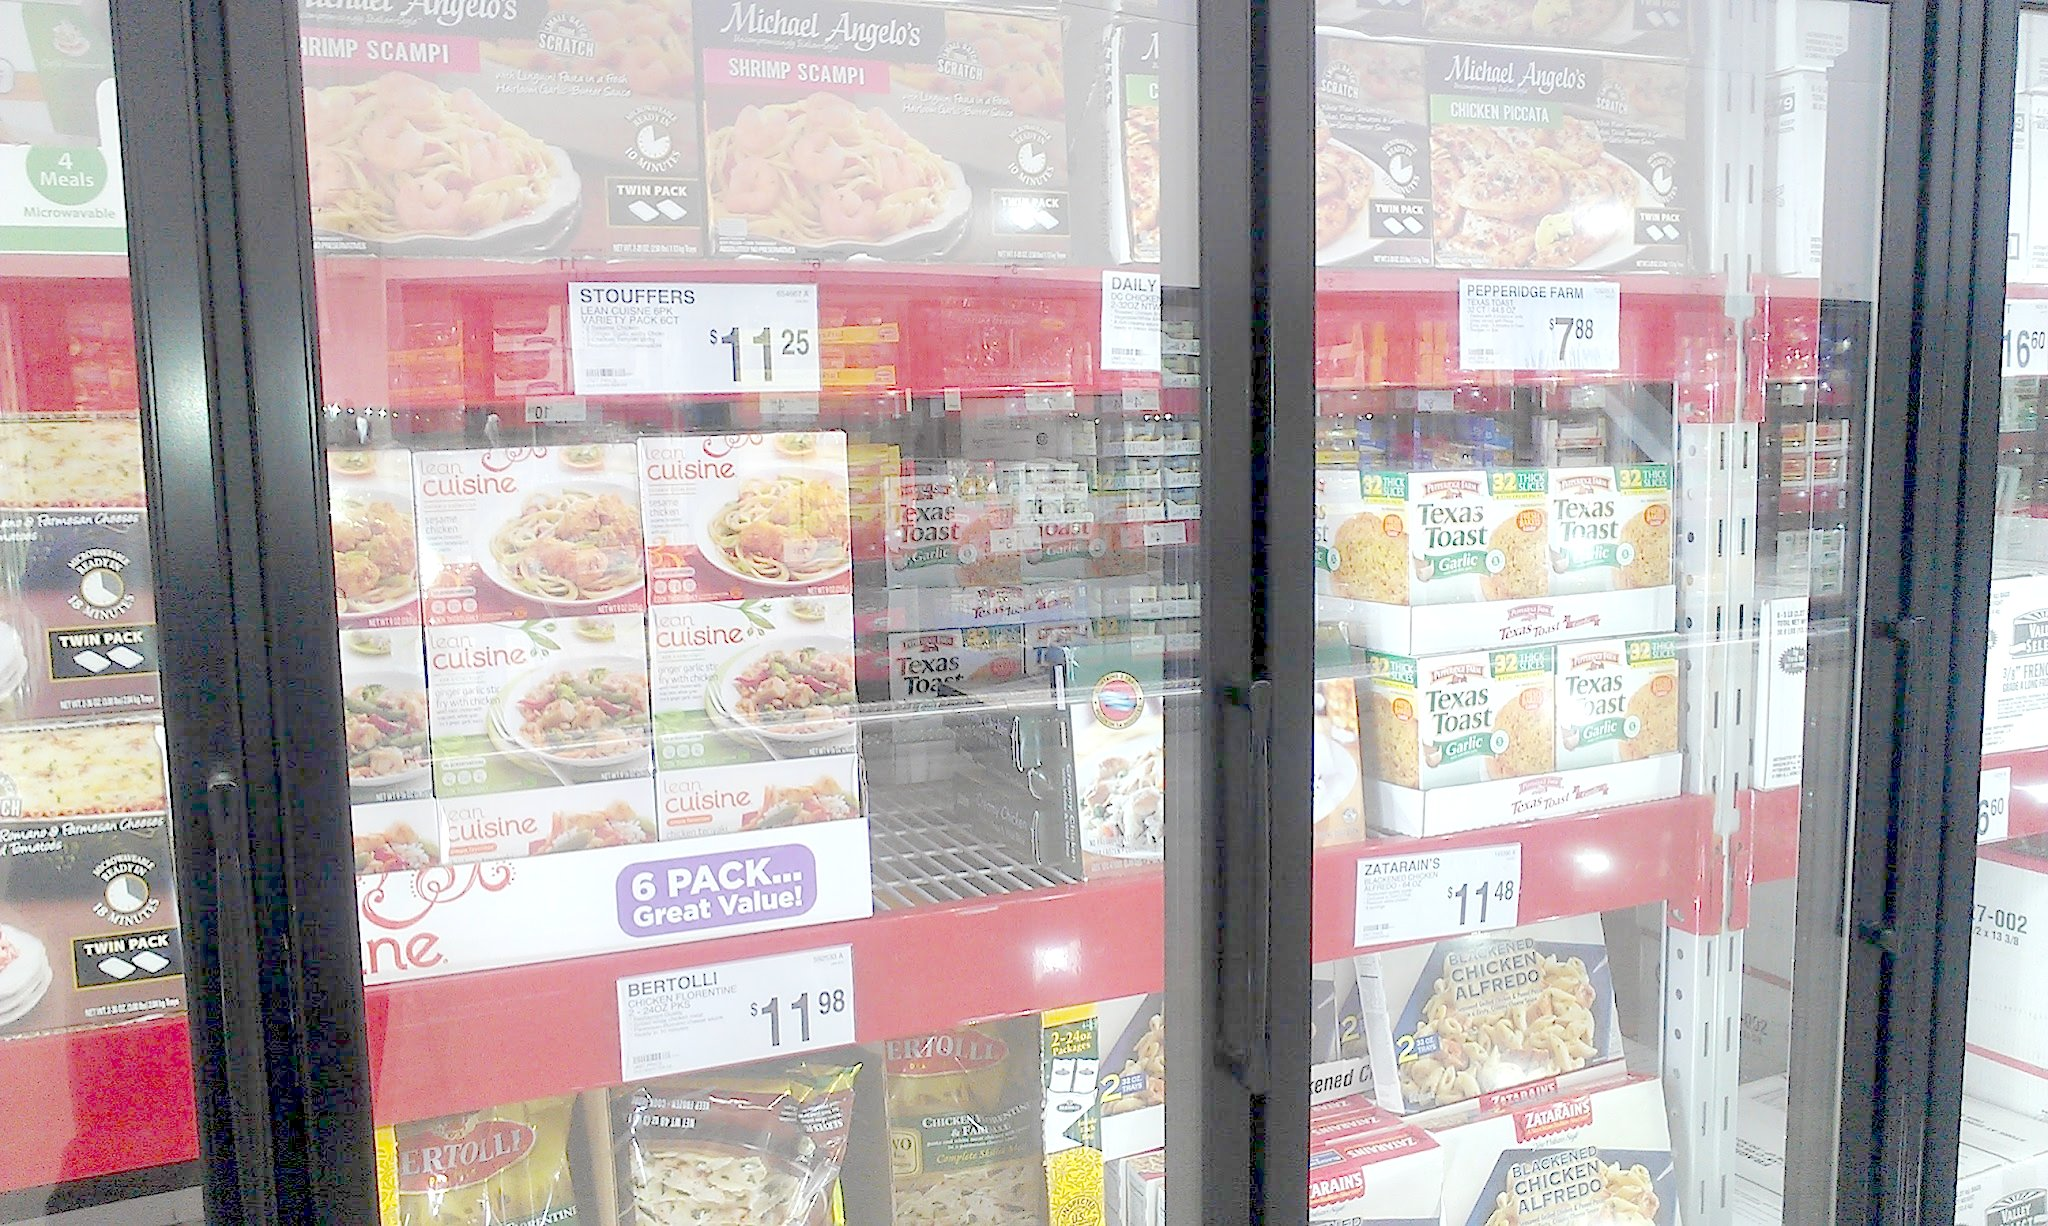 Photo: I found the Lean Cuisine on the same aisle in the frozen foods with the large family meals.